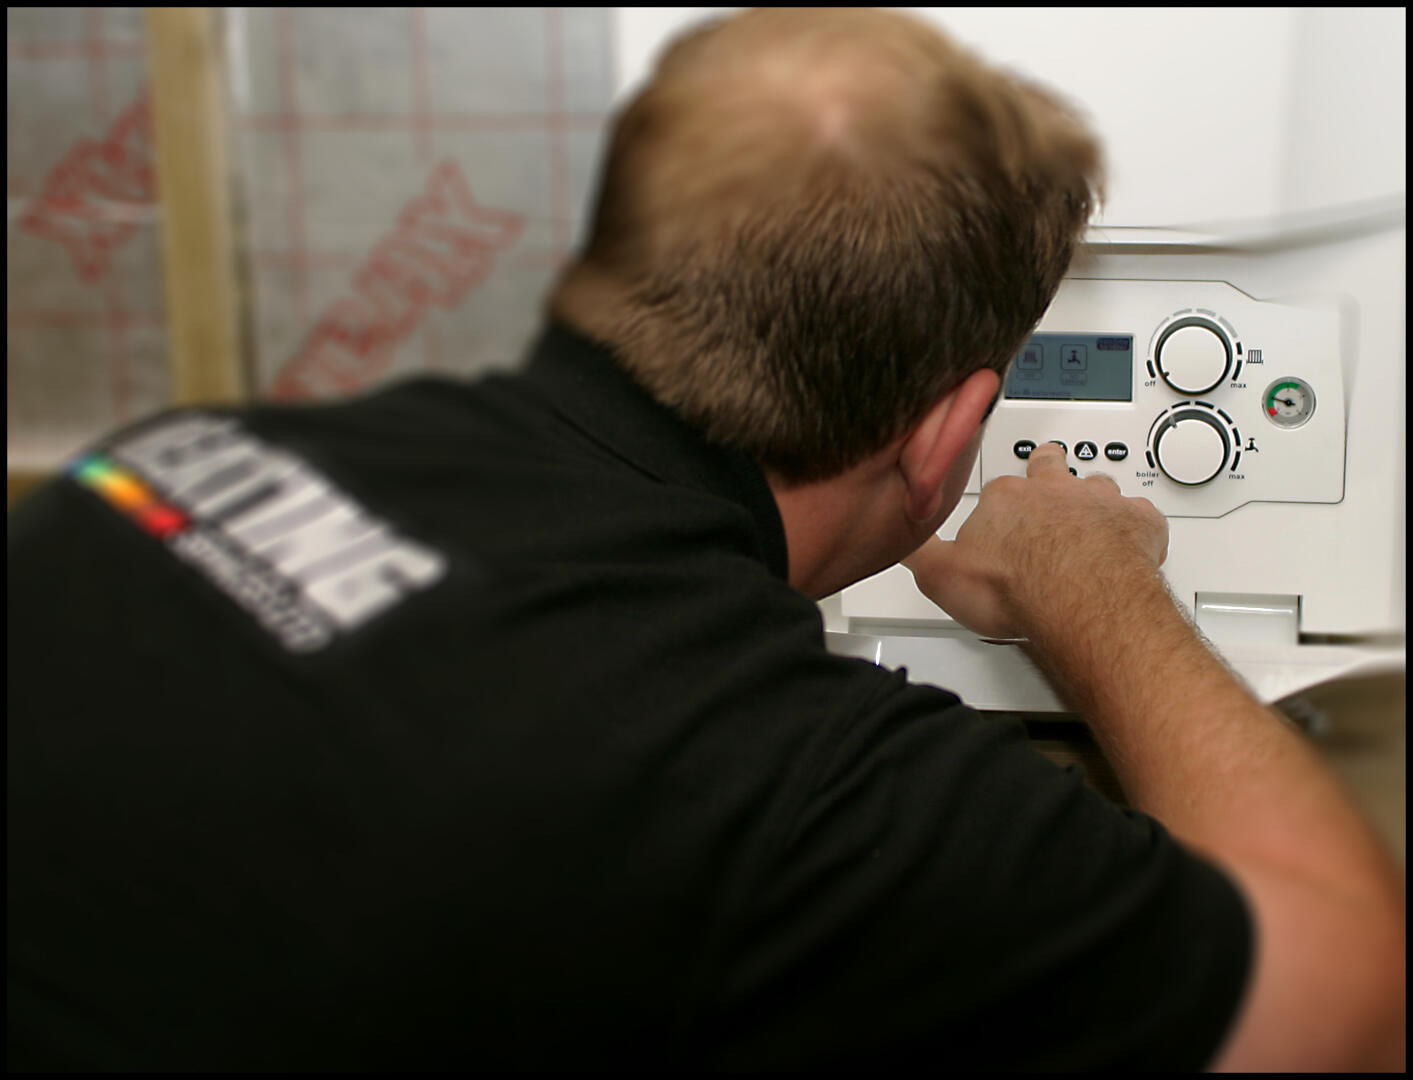 Plumbers Boiler Installation Service and Repairs and Bathroom Design and Installation by Heating Services Ltd in West Wickham (4)